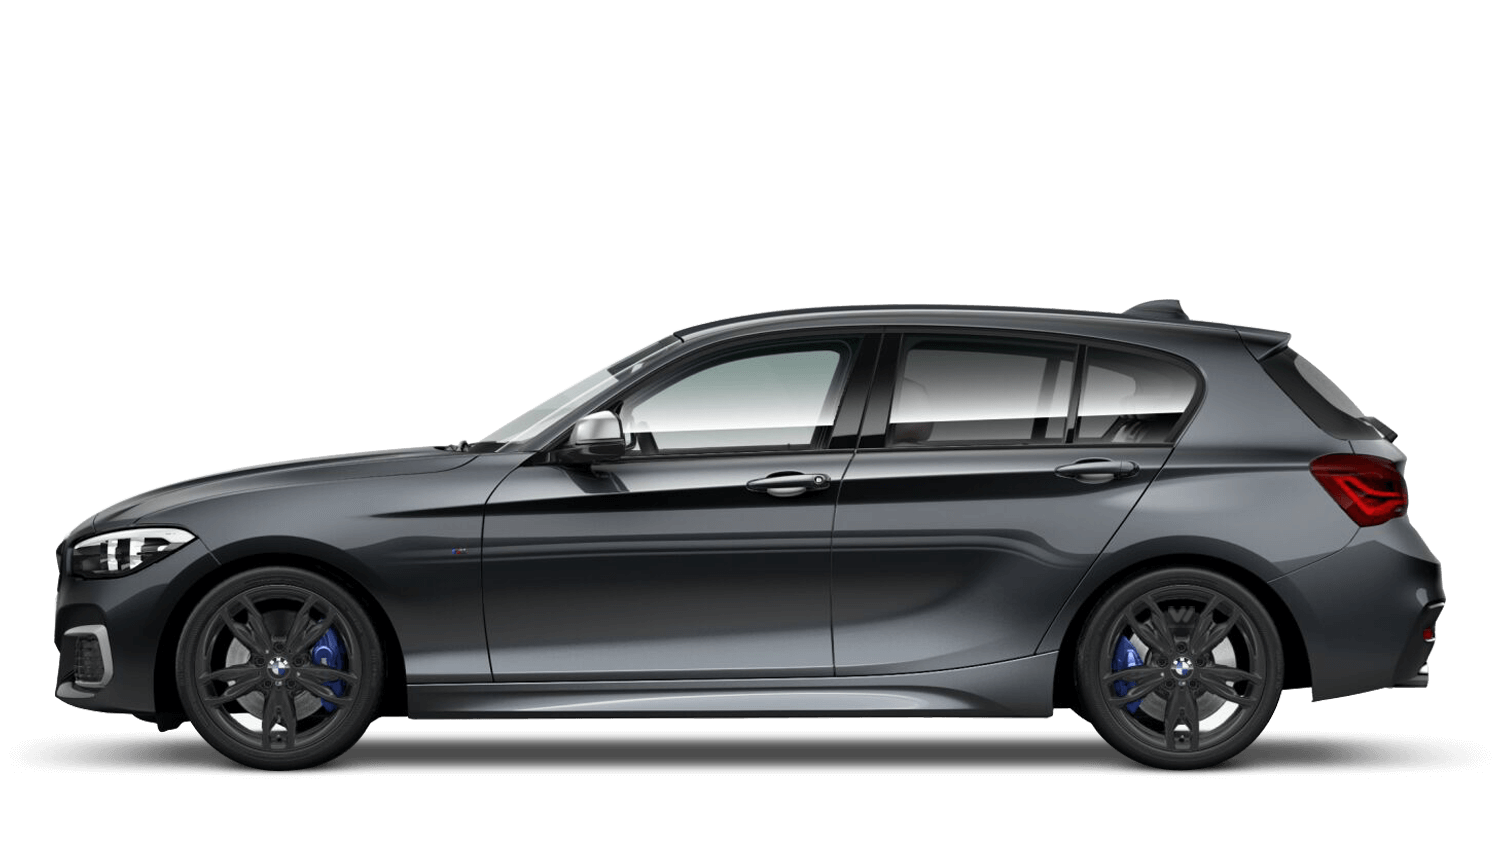 Le Meilleur Bmw 1 Series 5 Door M140I Shadow Edition Finance Ce Mois Ci